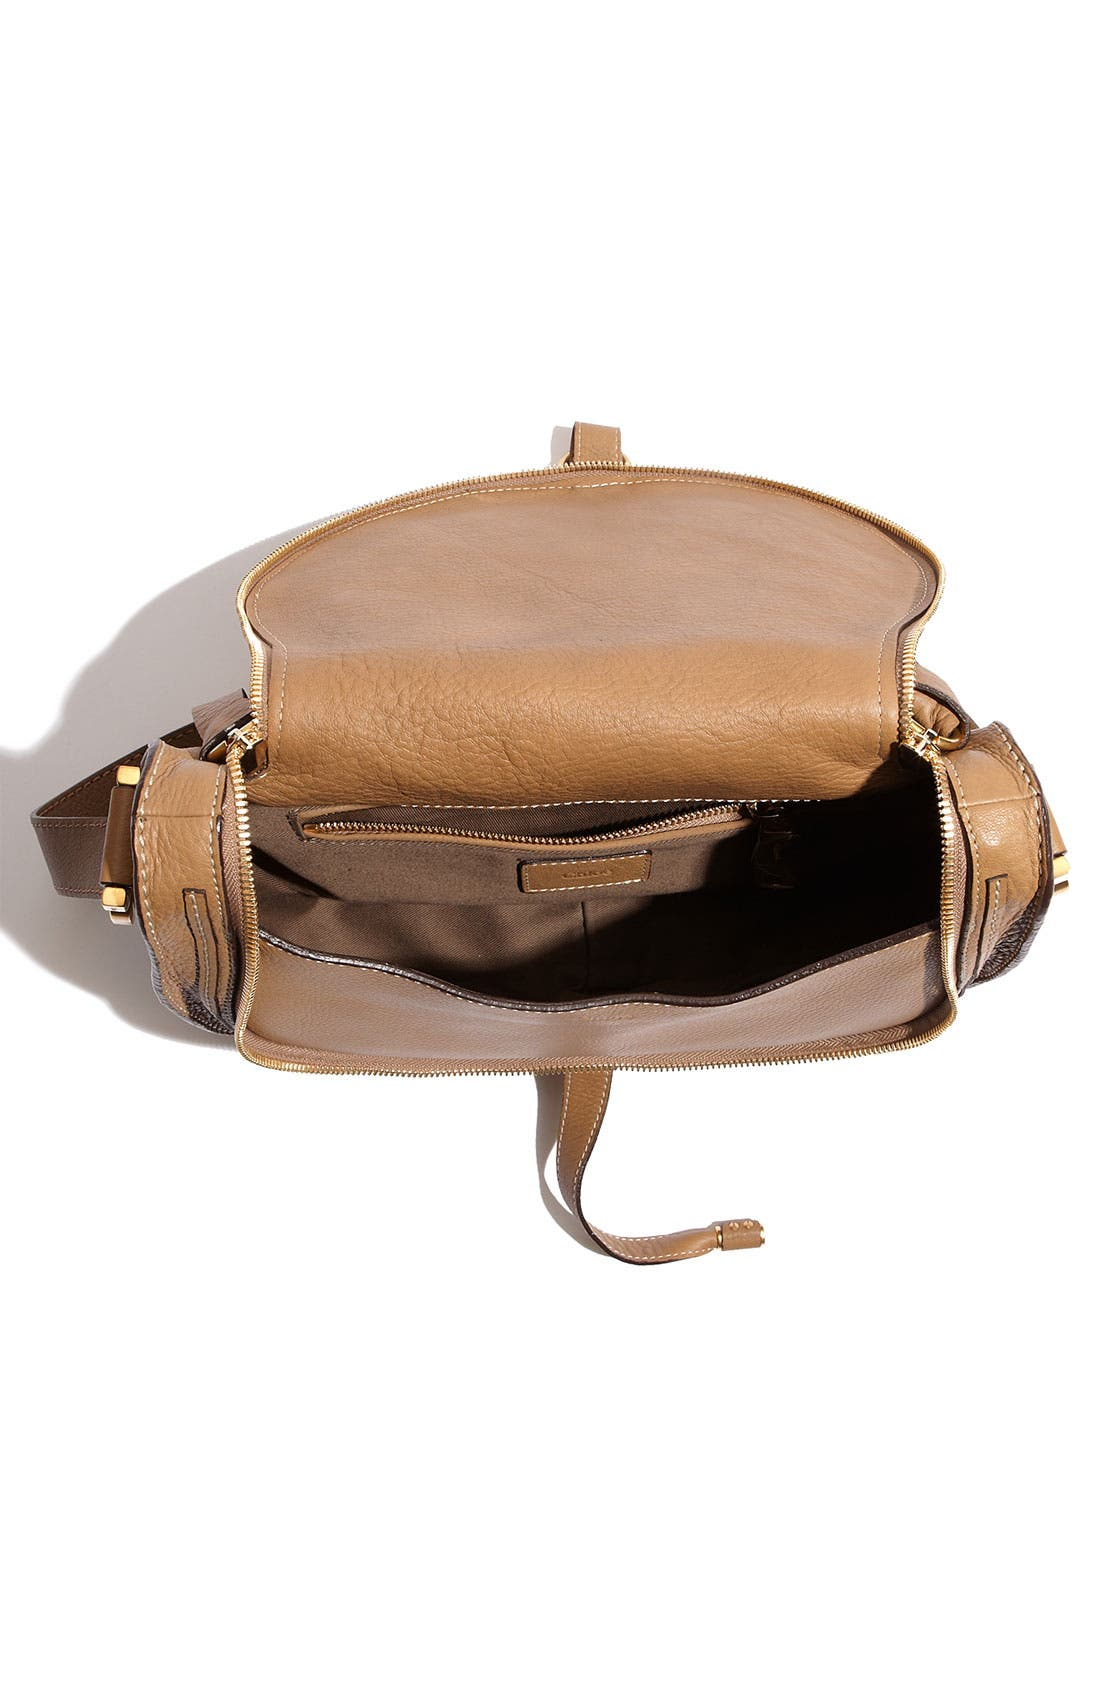 Alternate Image 3  - Chloé 'Marcie' Leather Crossbody Bag